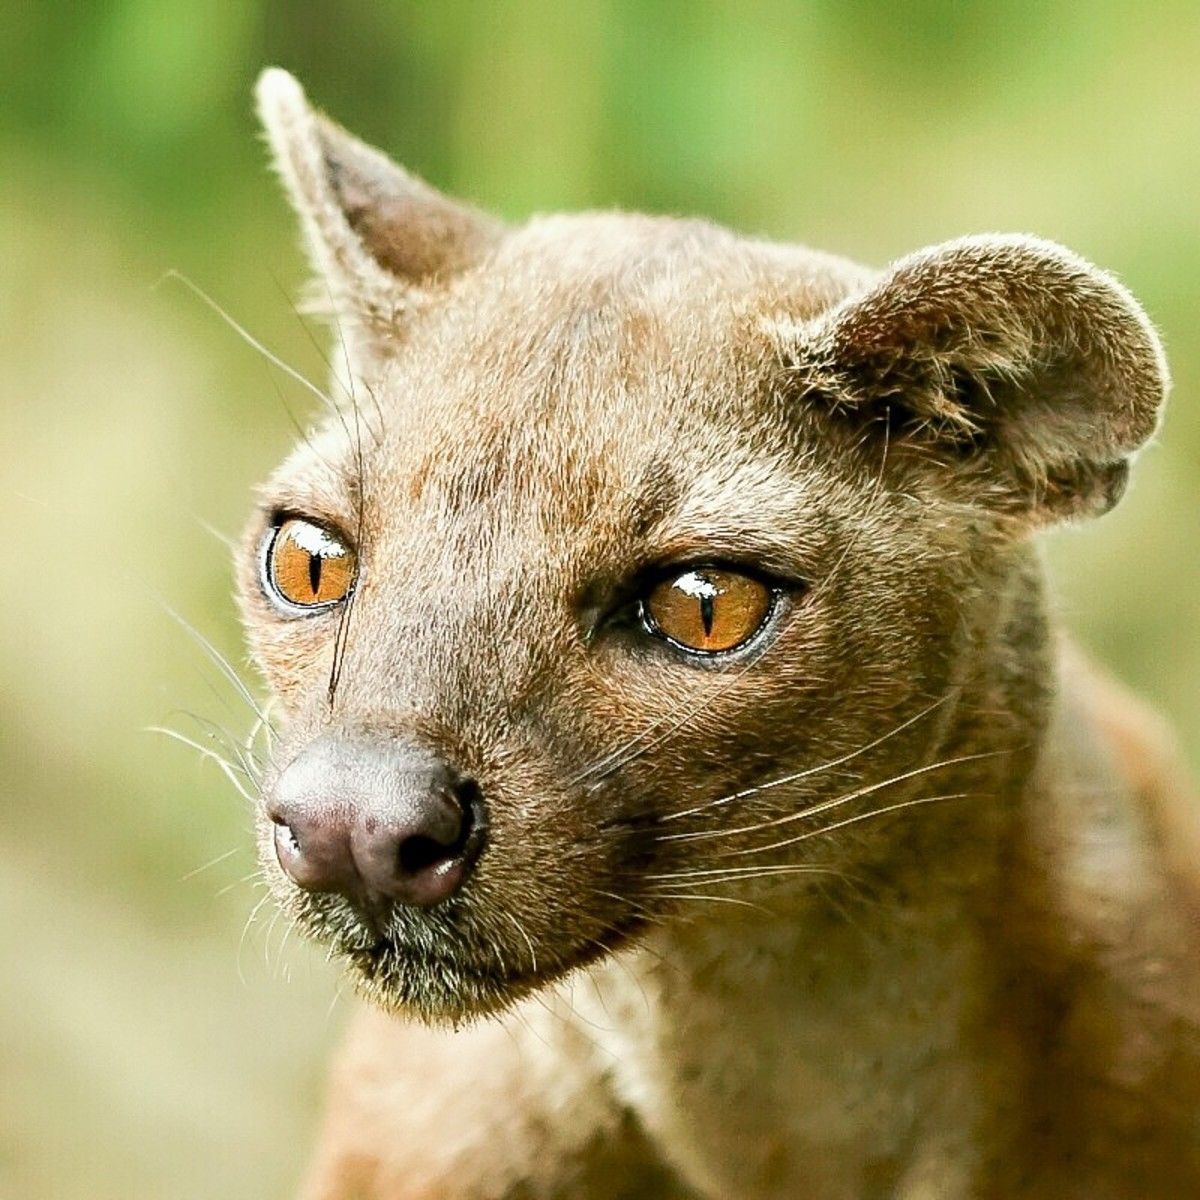 The Fossa: A Cat-Like Mongoose Relative in Madagascar